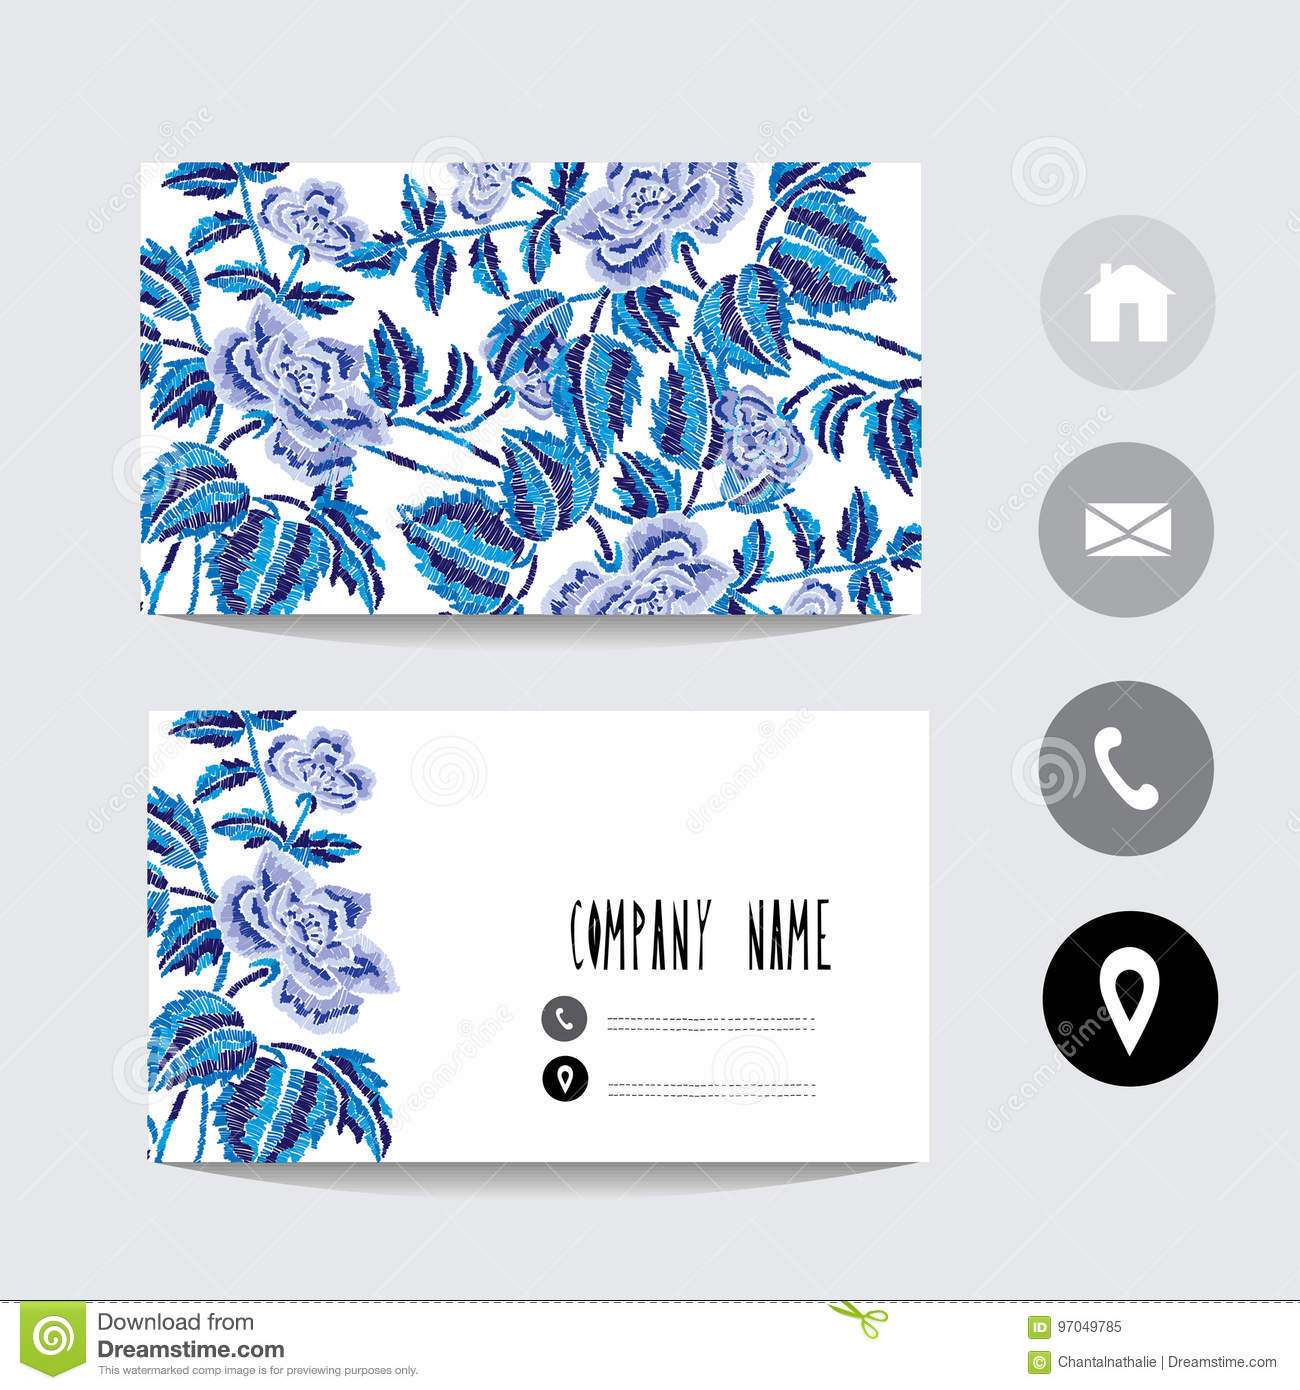 Business Card Template Stock Vector Illustration Of Artistic 97049785